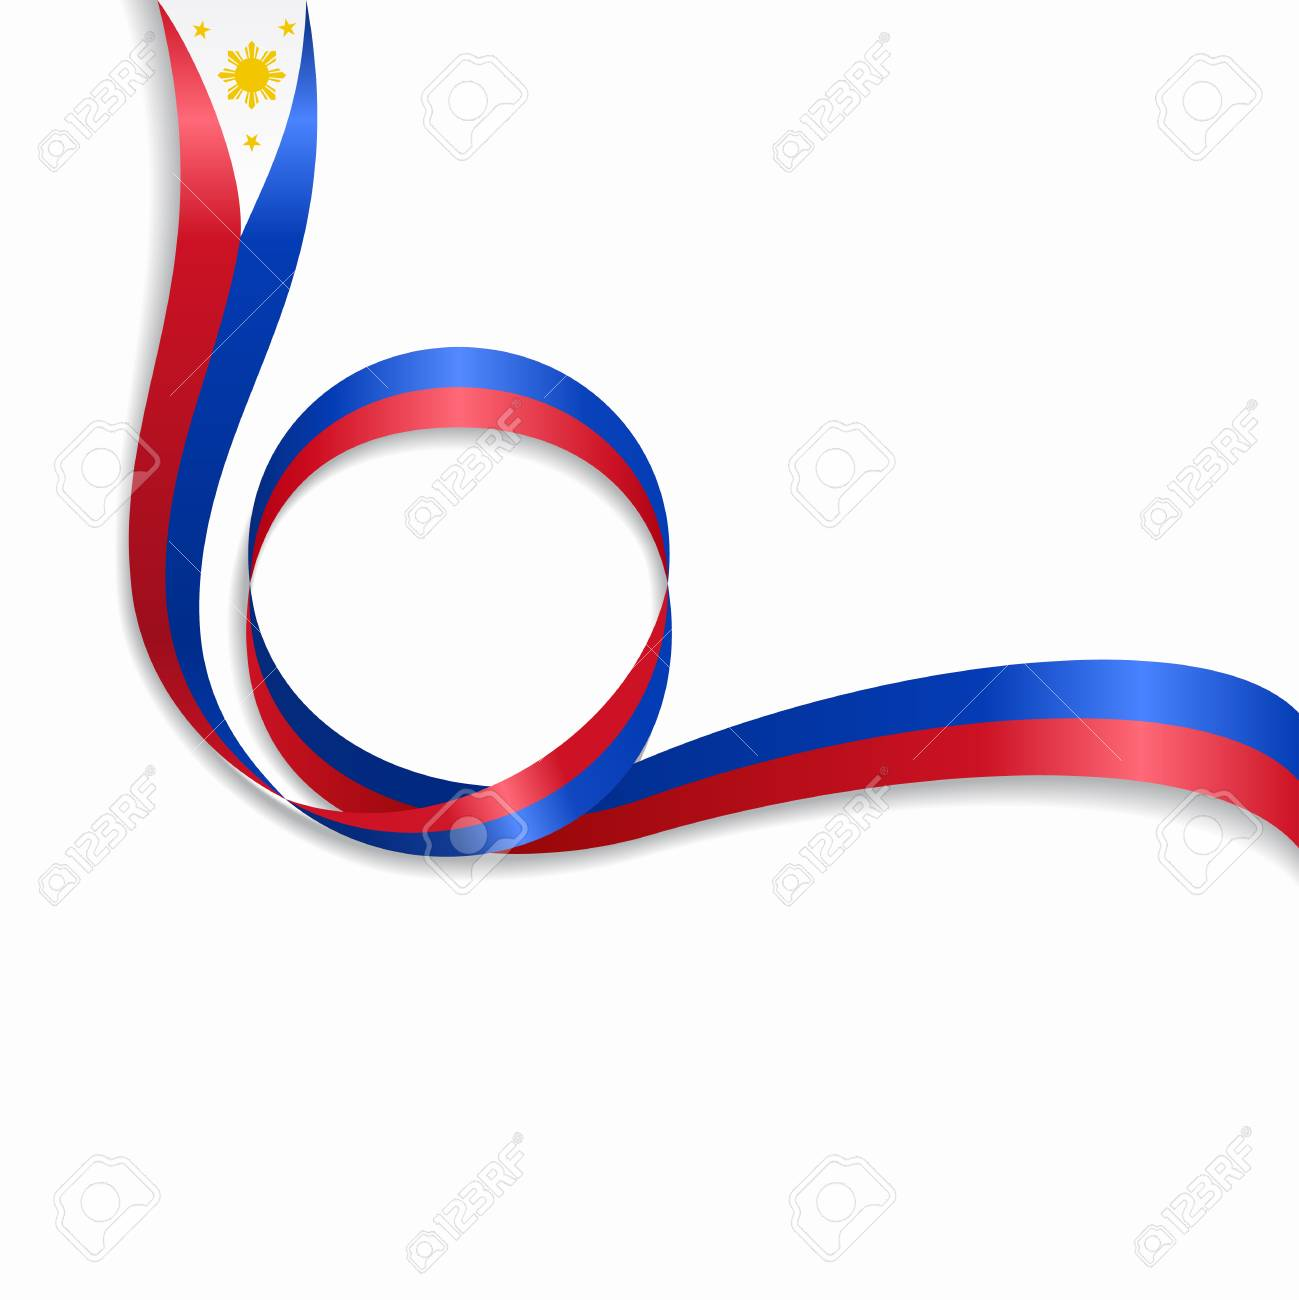 Philippines Flag In A Circular Wave Style Illustration On White Royalty Free Cliparts Vectors And Stock Illustration Image 93533448 Philippines flag waving abstract background loop animation motion. philippines flag in a circular wave style illustration on white